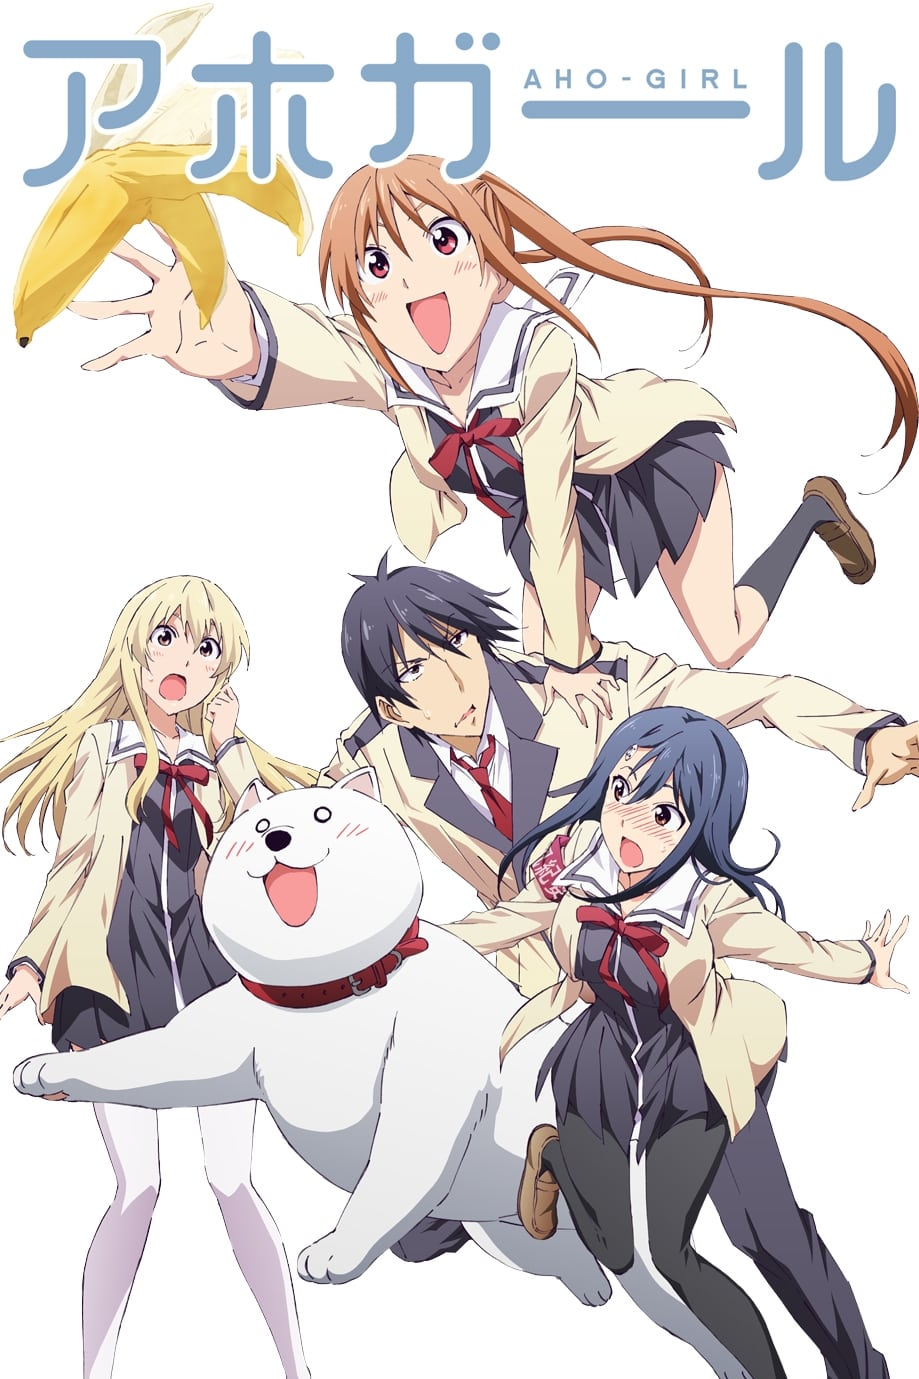 Aho Girl series tv complet